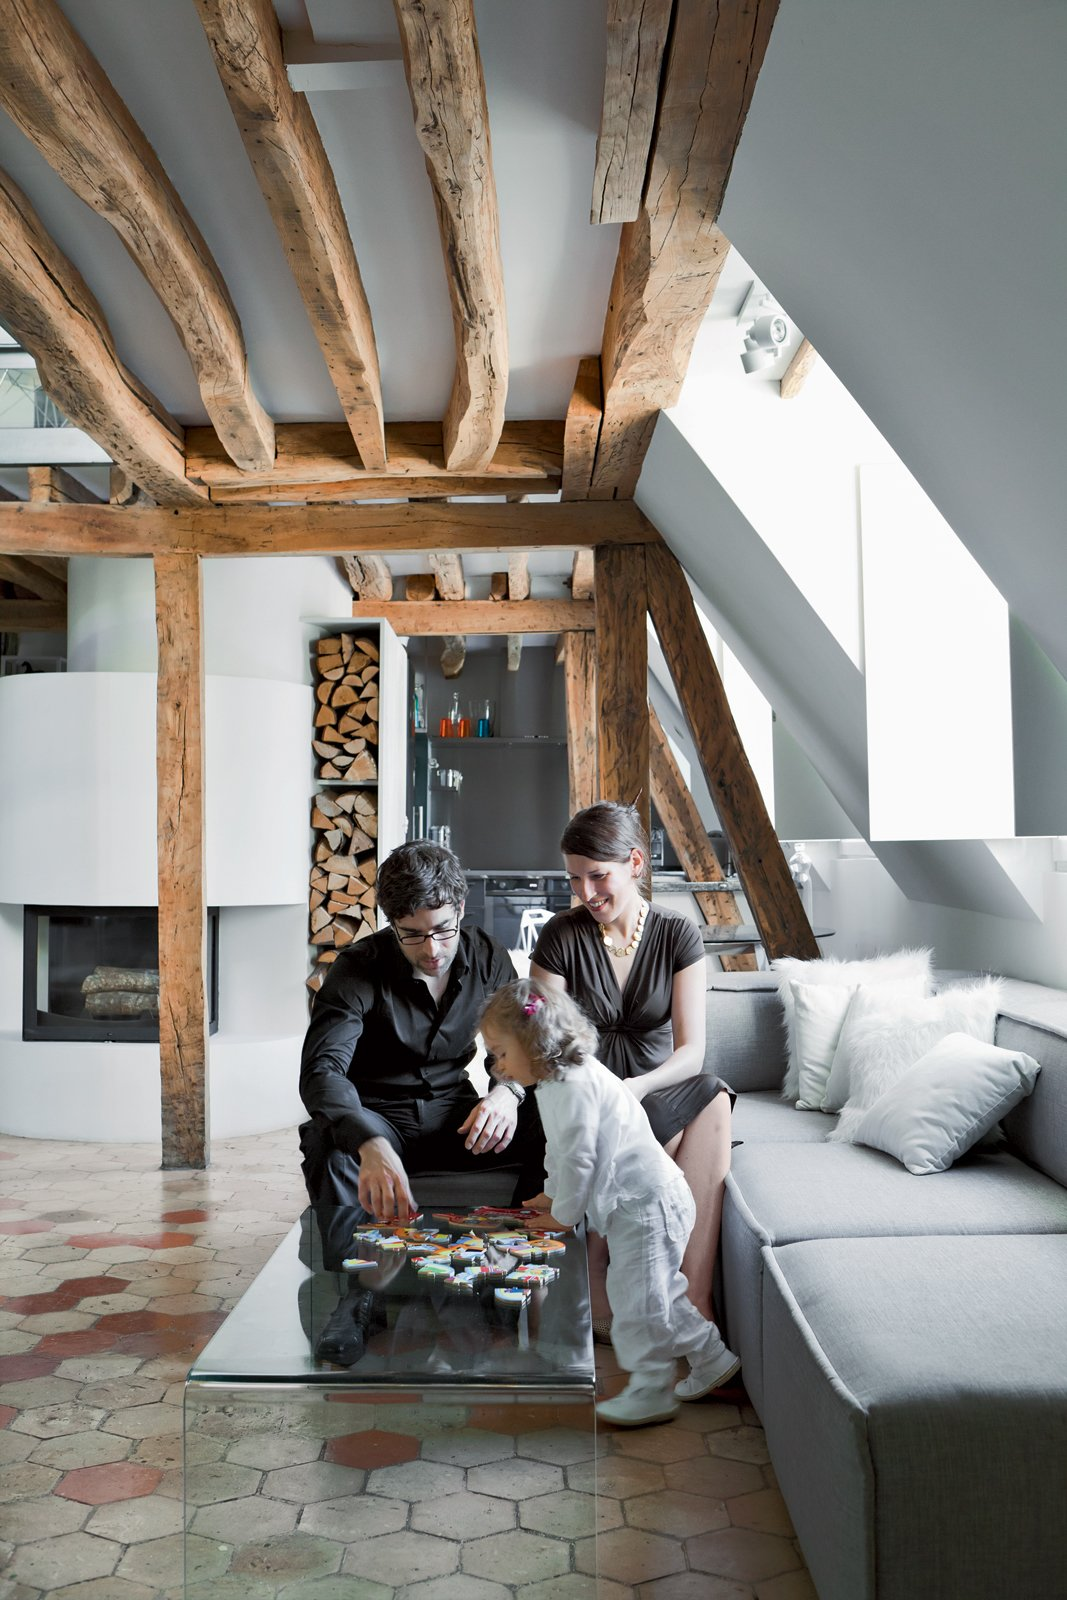 Herrman, his wife, Cécile, and their young daughter, Rose, play on the Pont table by Ligne Roset . The Carmo sofa is by Anders Nørgaard for BoConcept. Tagged: Living Room, Ceramic Tile Floor, Wood Burning Fireplace, and Sofa.  Photo 5 of 10 in 10 Modern Renovations to Unique Homes in France from A Corbusier-Inspired Parisian Home